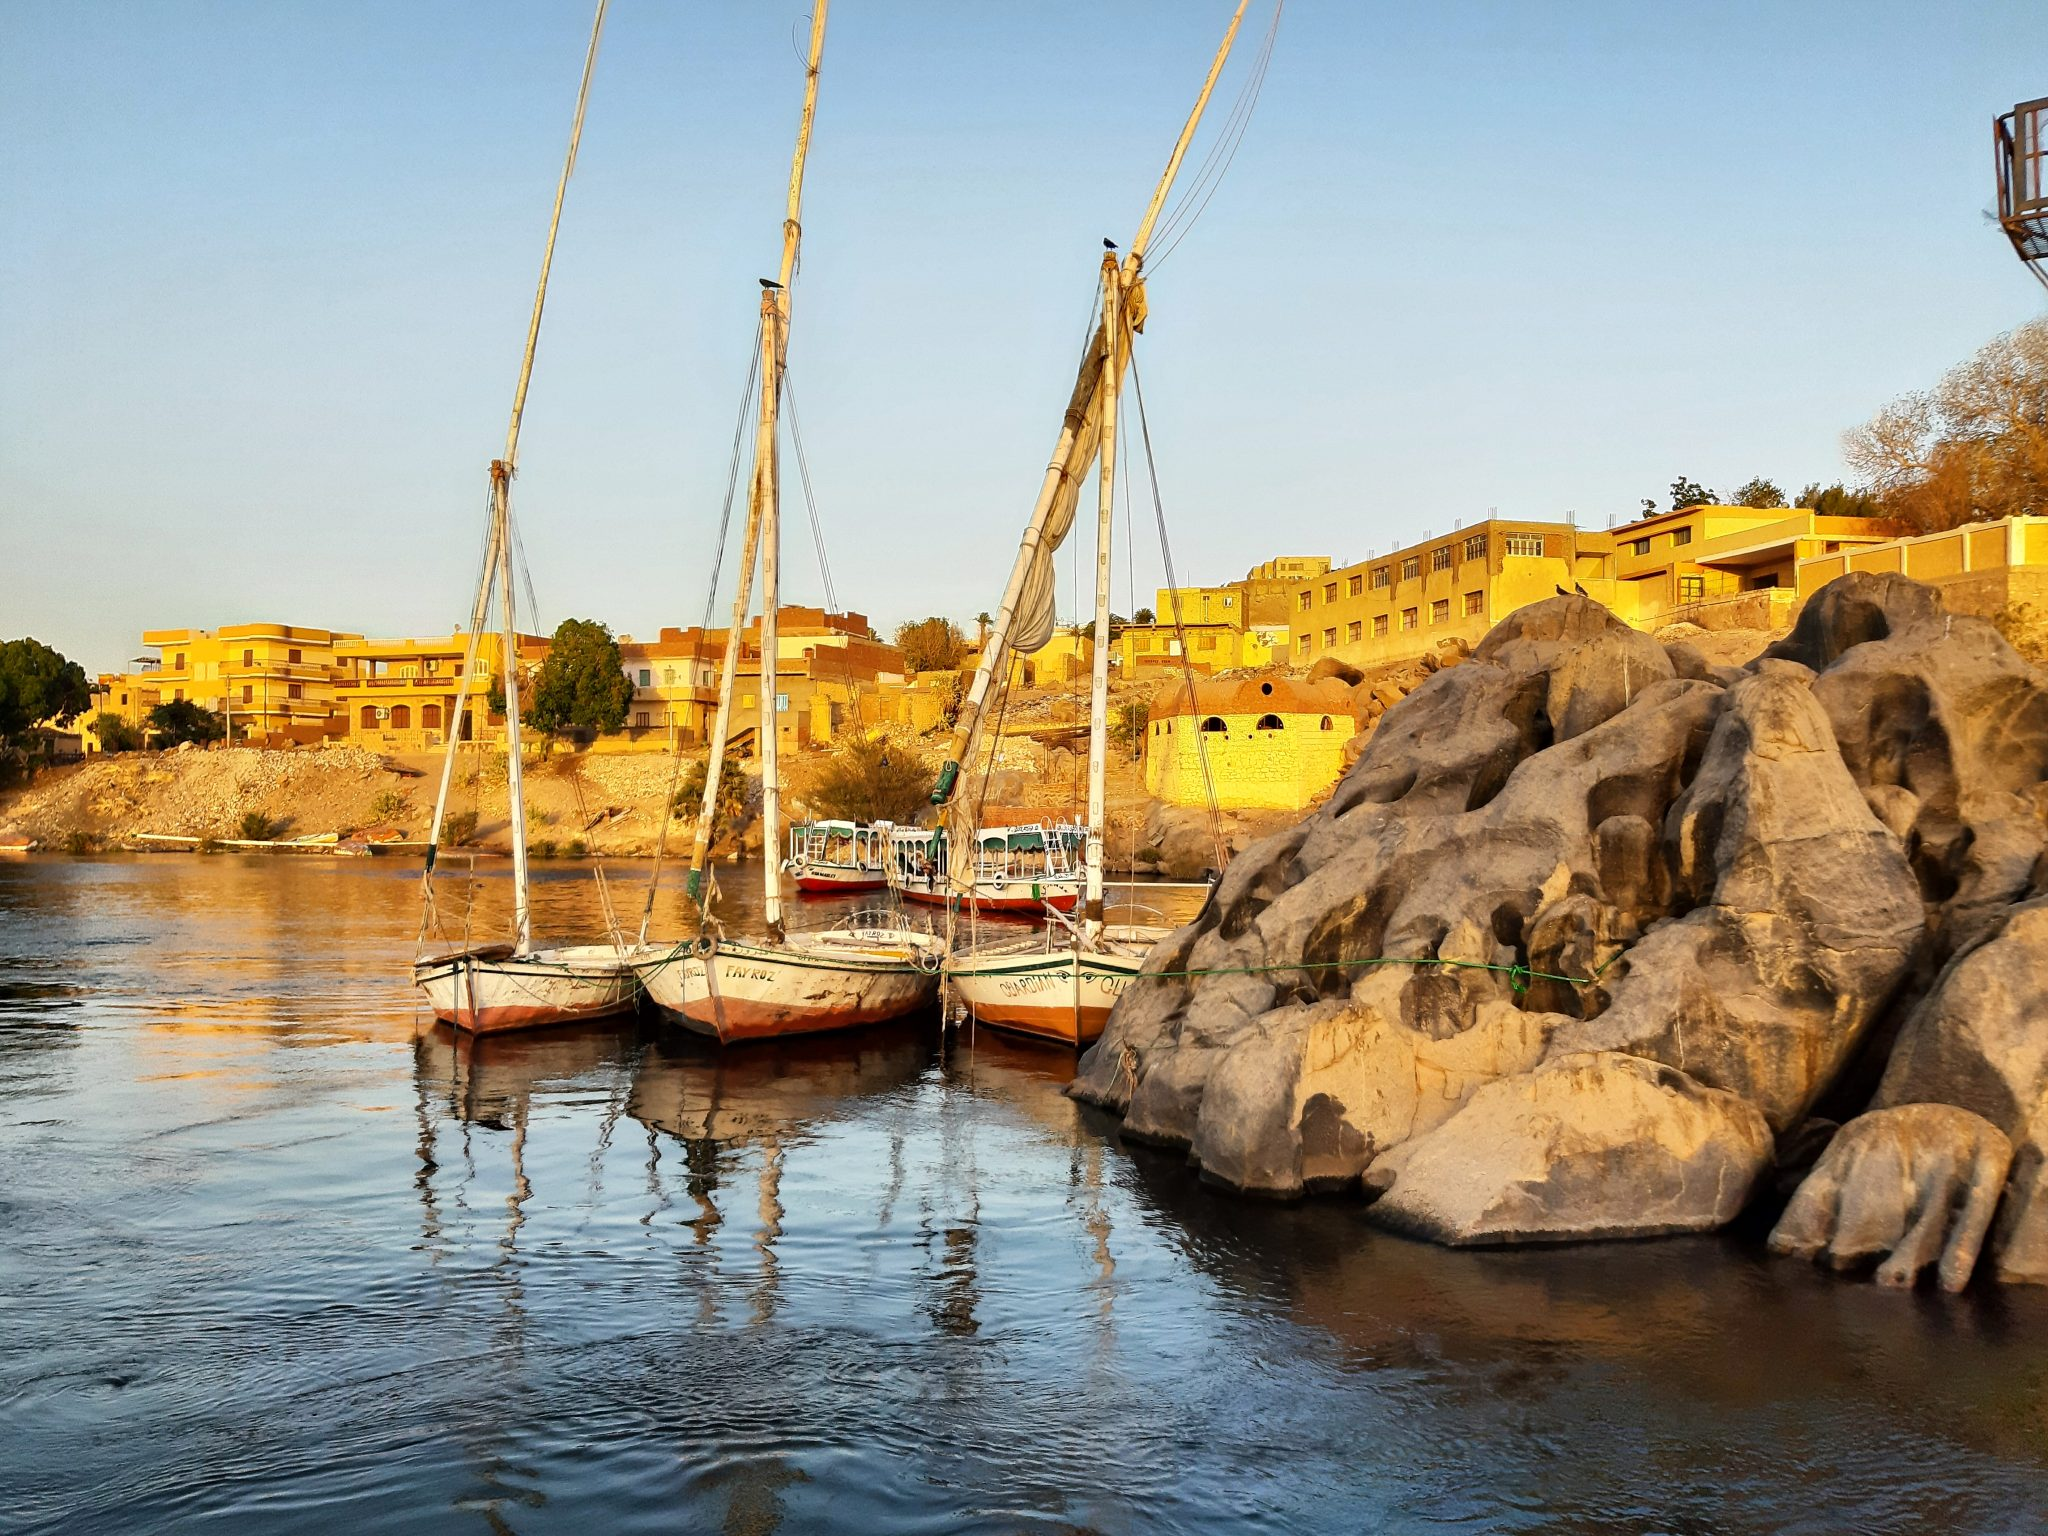 Aswan day tour from Hurghada